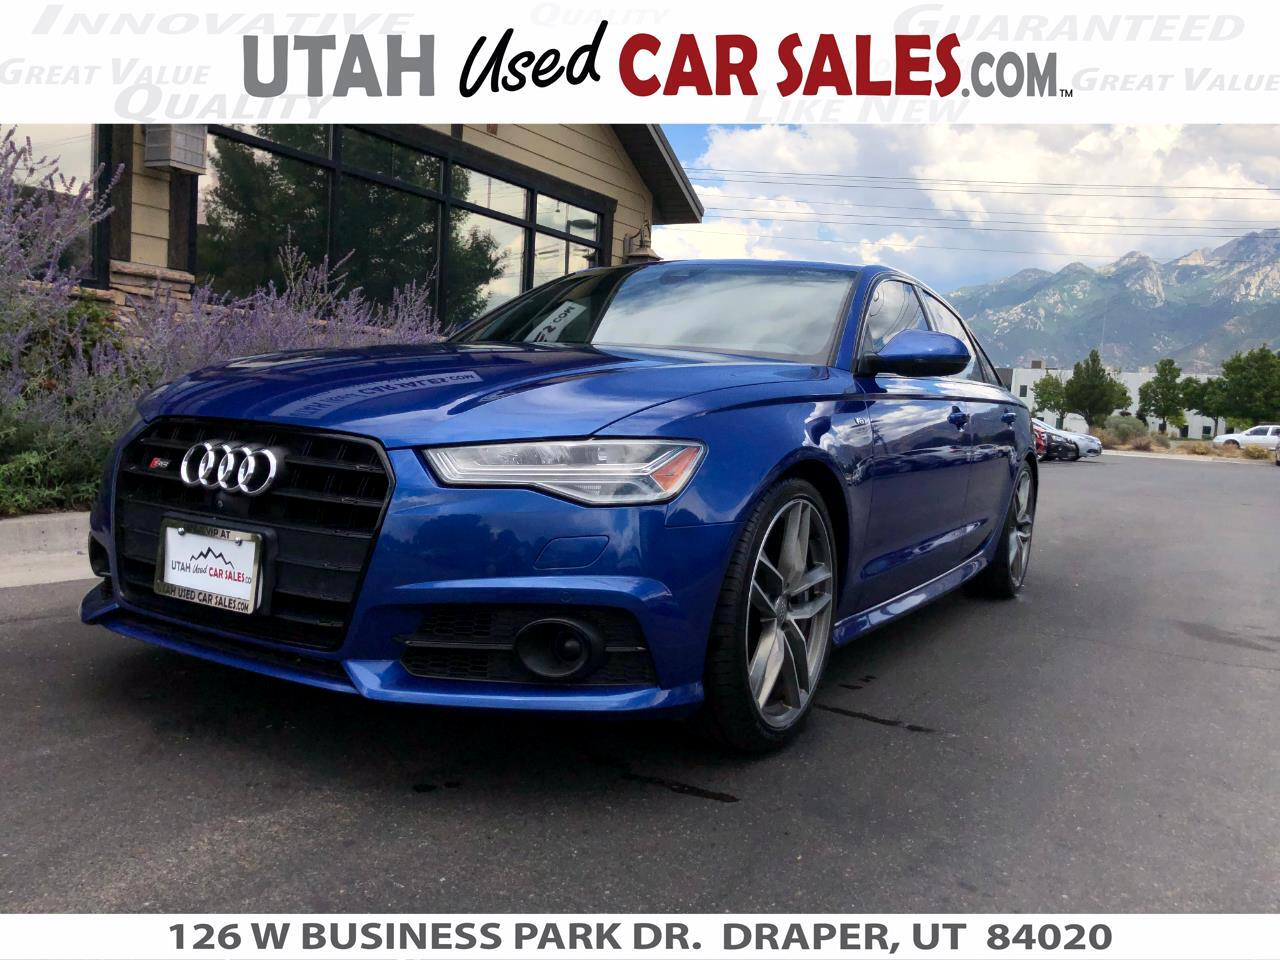 Used Cars Utah >> View Utah Used Car Sales Current Inventory For Quality Used Cars At